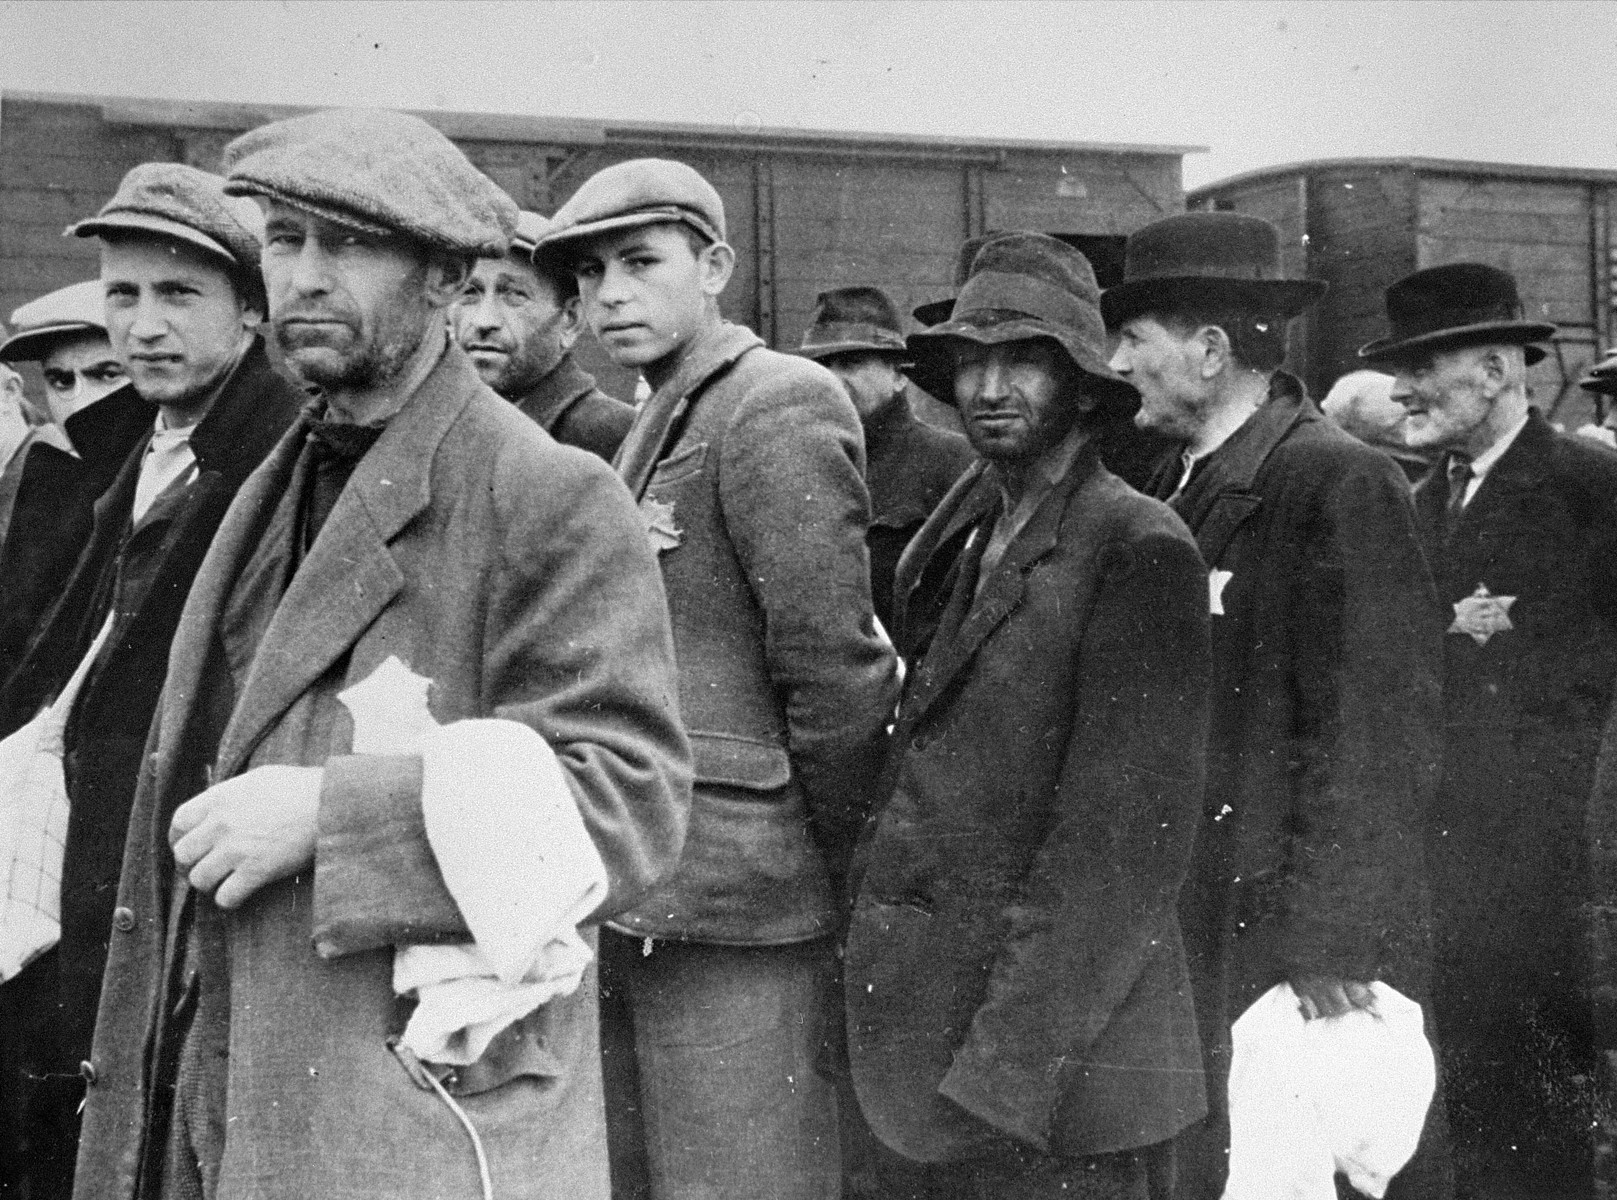 Jewish men from Subcarpathian Rus await selection on the ramp at Auschwitz-Birkenau.  Among those pictured are the brothers Martin and Simon Herskovics (behind and at the far left), and their father, Moshe, in the left foreground.  Behind the Herskovics' is Yechiel Slomovics and his son Motti; and in the center, wearing a peasant hat is Jossel Schmajovics.  Also, pictured is Solomon Hershkovitz and Zaliman Hershovitz.